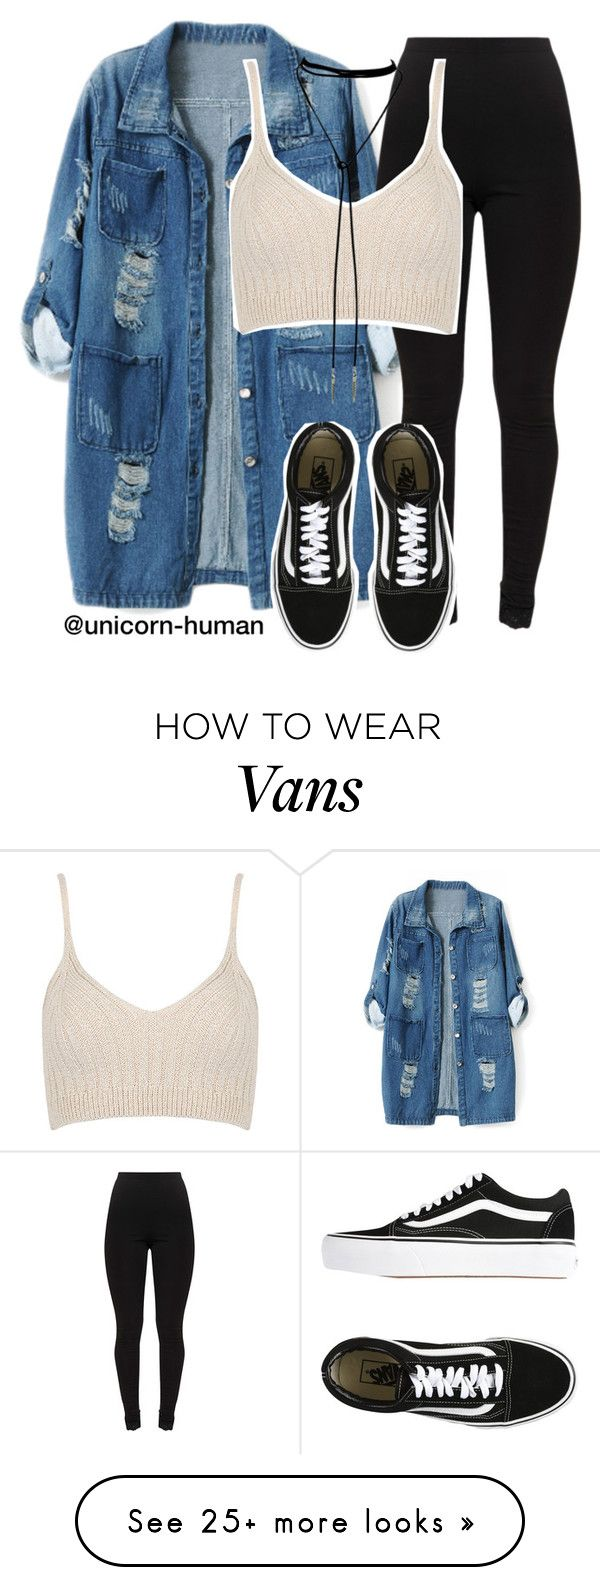 """Untitled #2998"" by unicorn-human on Polyvore featuring Chicnova Fashion, WithChic and Vans"